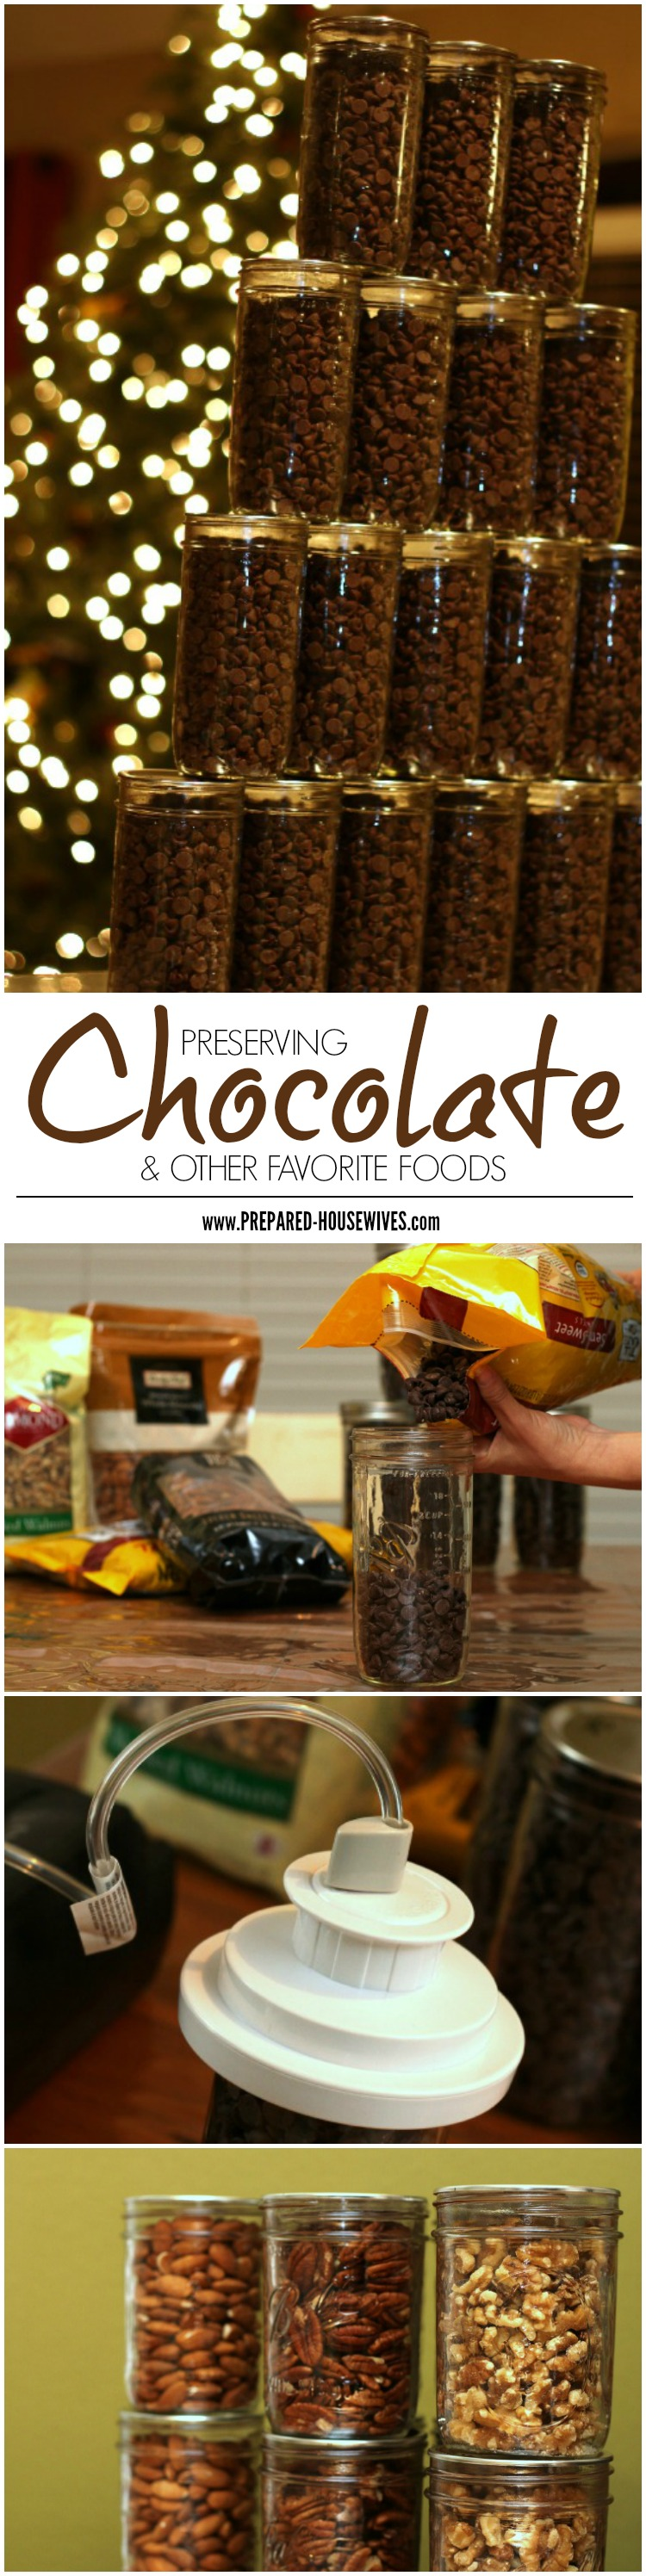 Preserving Favorite Foods - Chocolate, Cheetos, Nuts, & More!